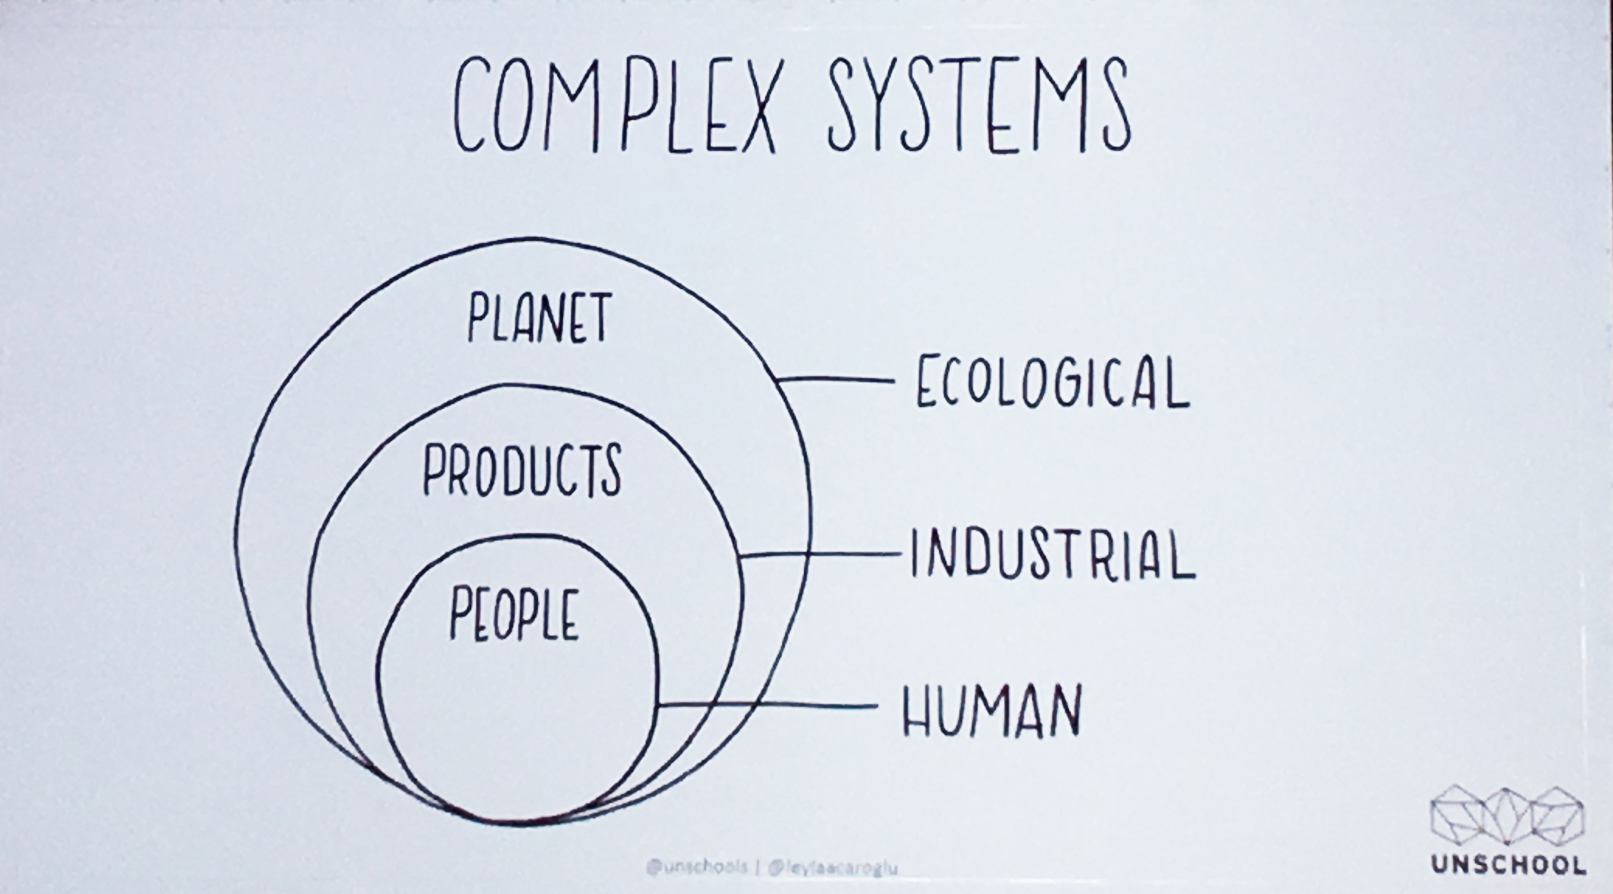 Leyla Acaroglu's depiction of the nested nature of complex systems